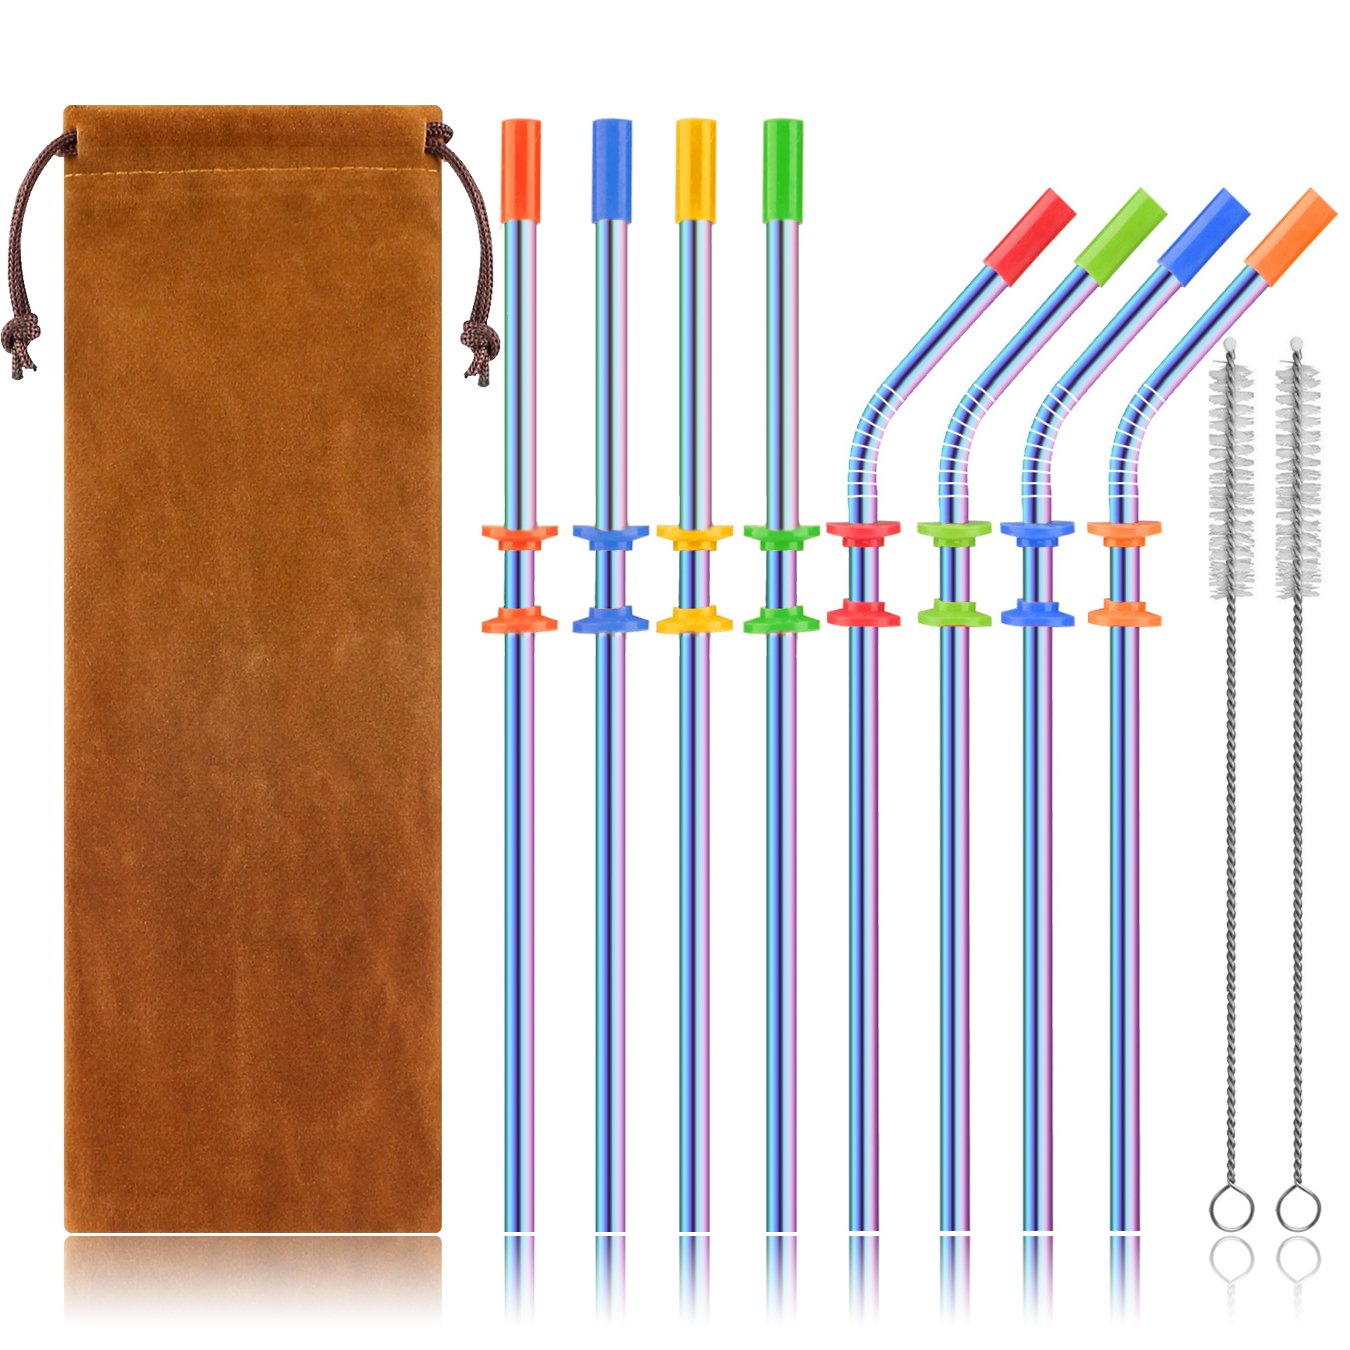 Stainless Steel Straws Set, Kereda 8 Pack 10.5 Inch Long Drinking Metal Reusable Straws with Cleaning Brushes and Silicone Covers For Tumblers Cups Cold Beverage (4 Straight|4 Bent), Multicolor